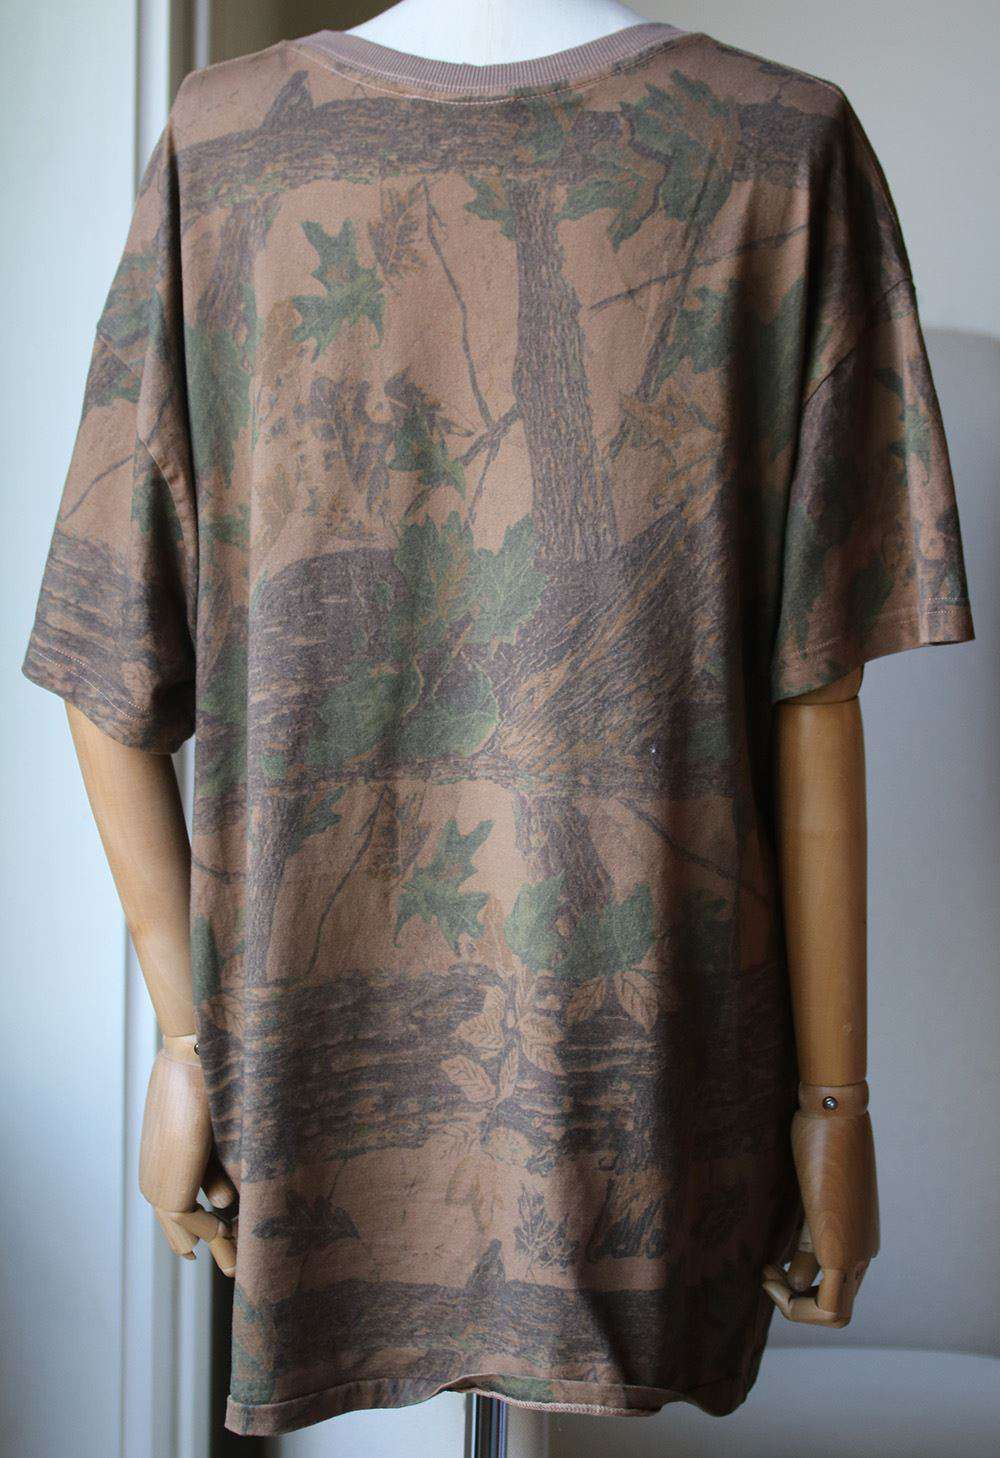 YEEZY SEASON 4 CAMO COTTON T-SHIRT MEDIUM